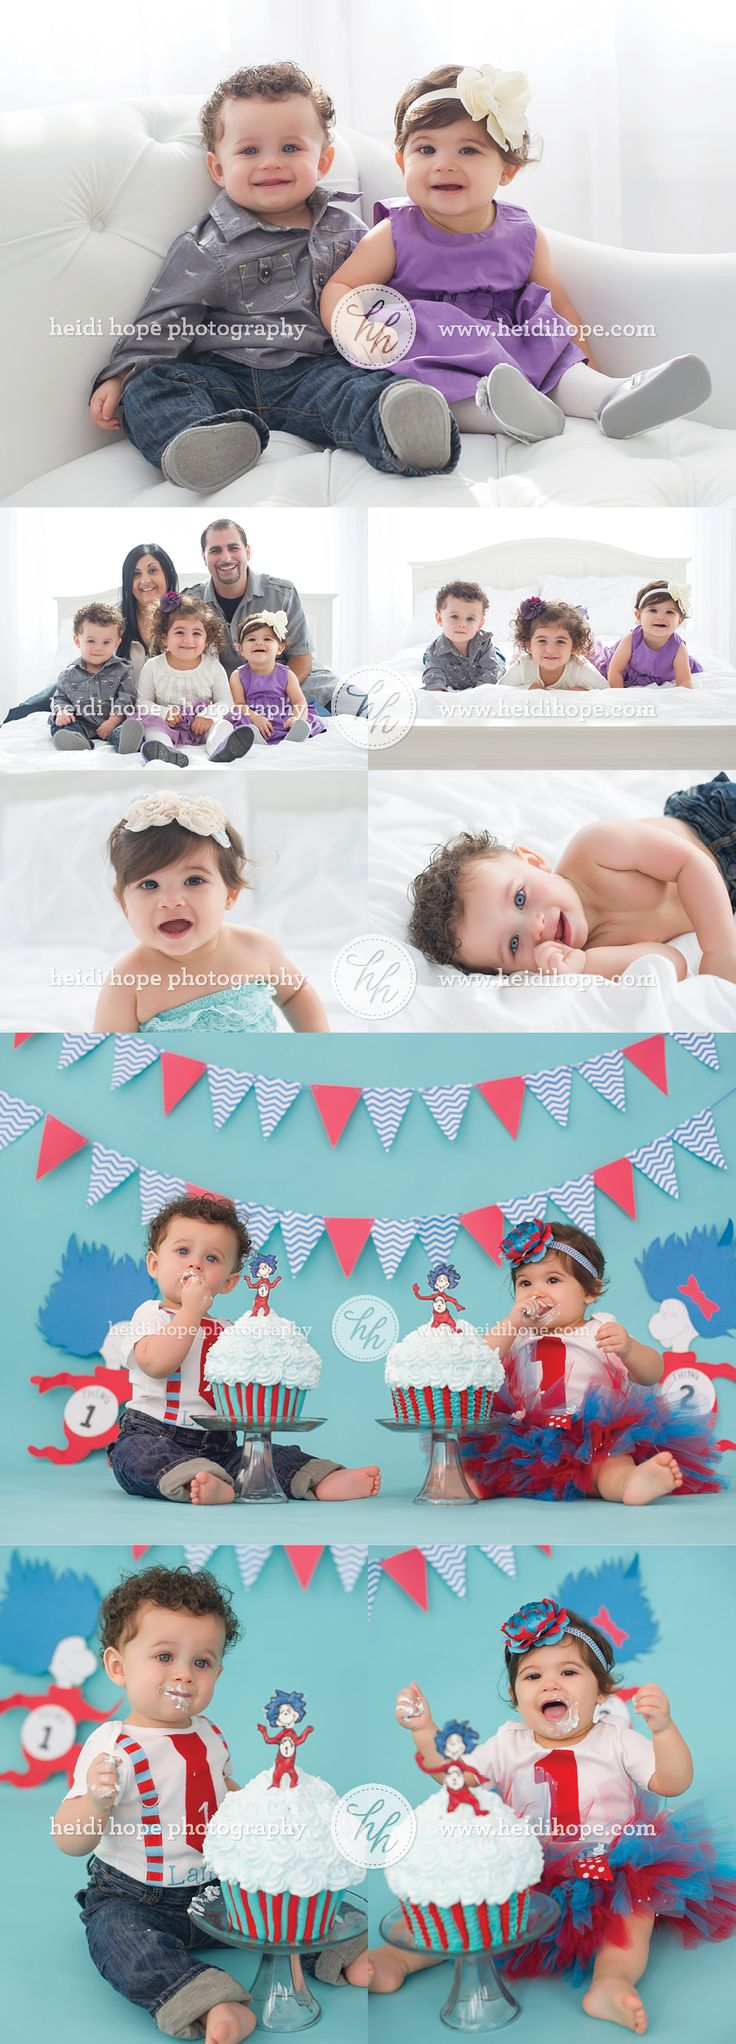 Happy First Birthday, L and L! | Heidi Hope Photography